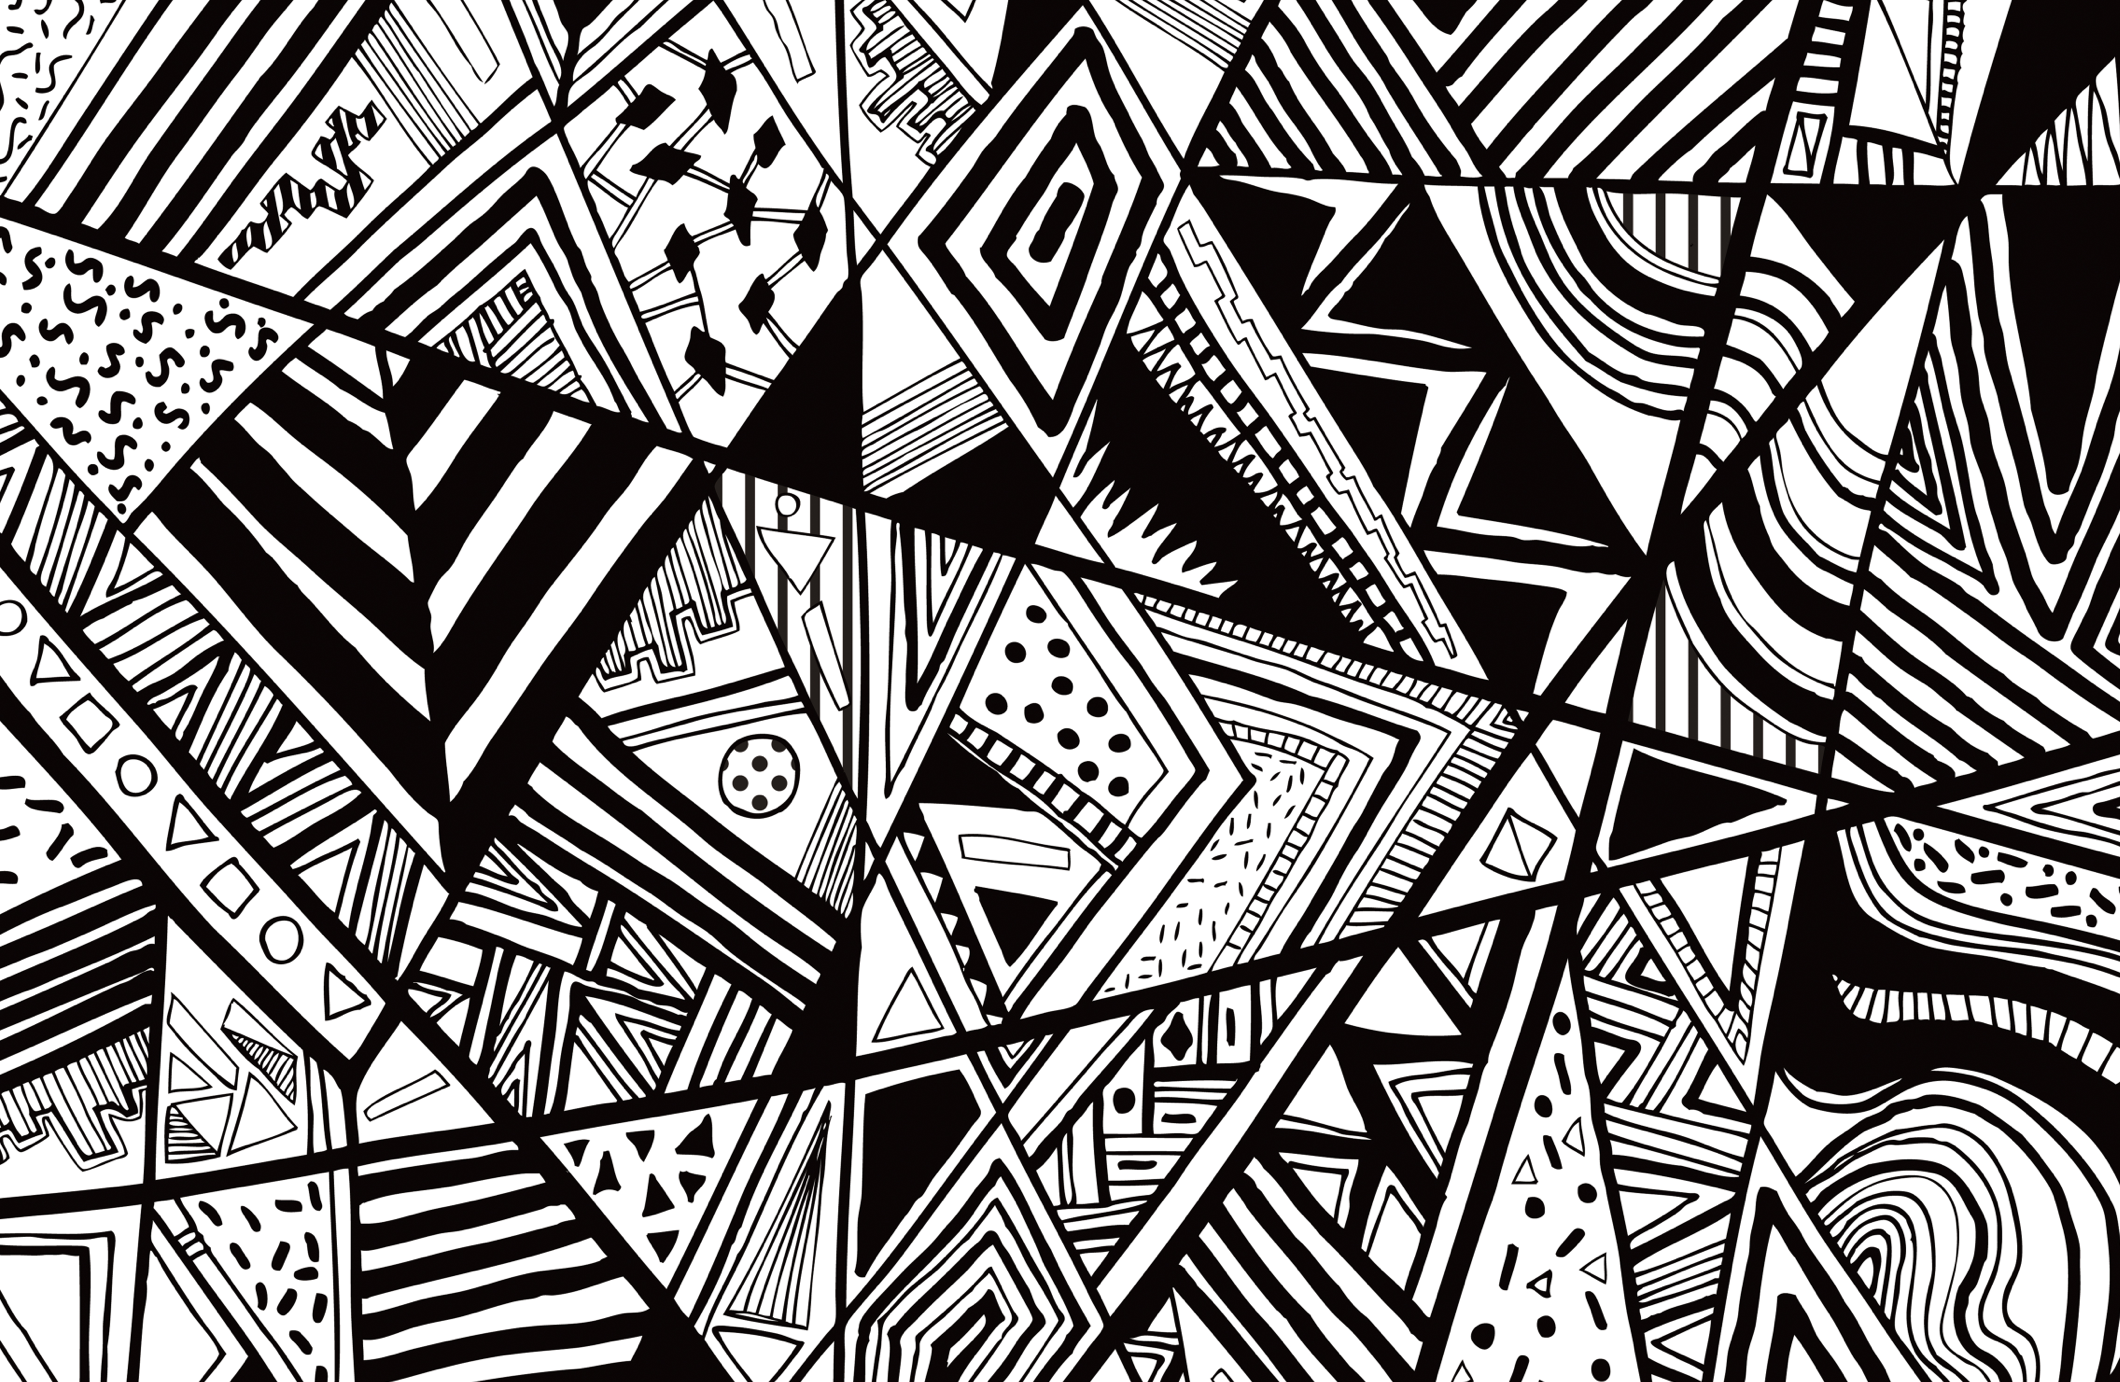 16 Black And White Abstract Designs Images